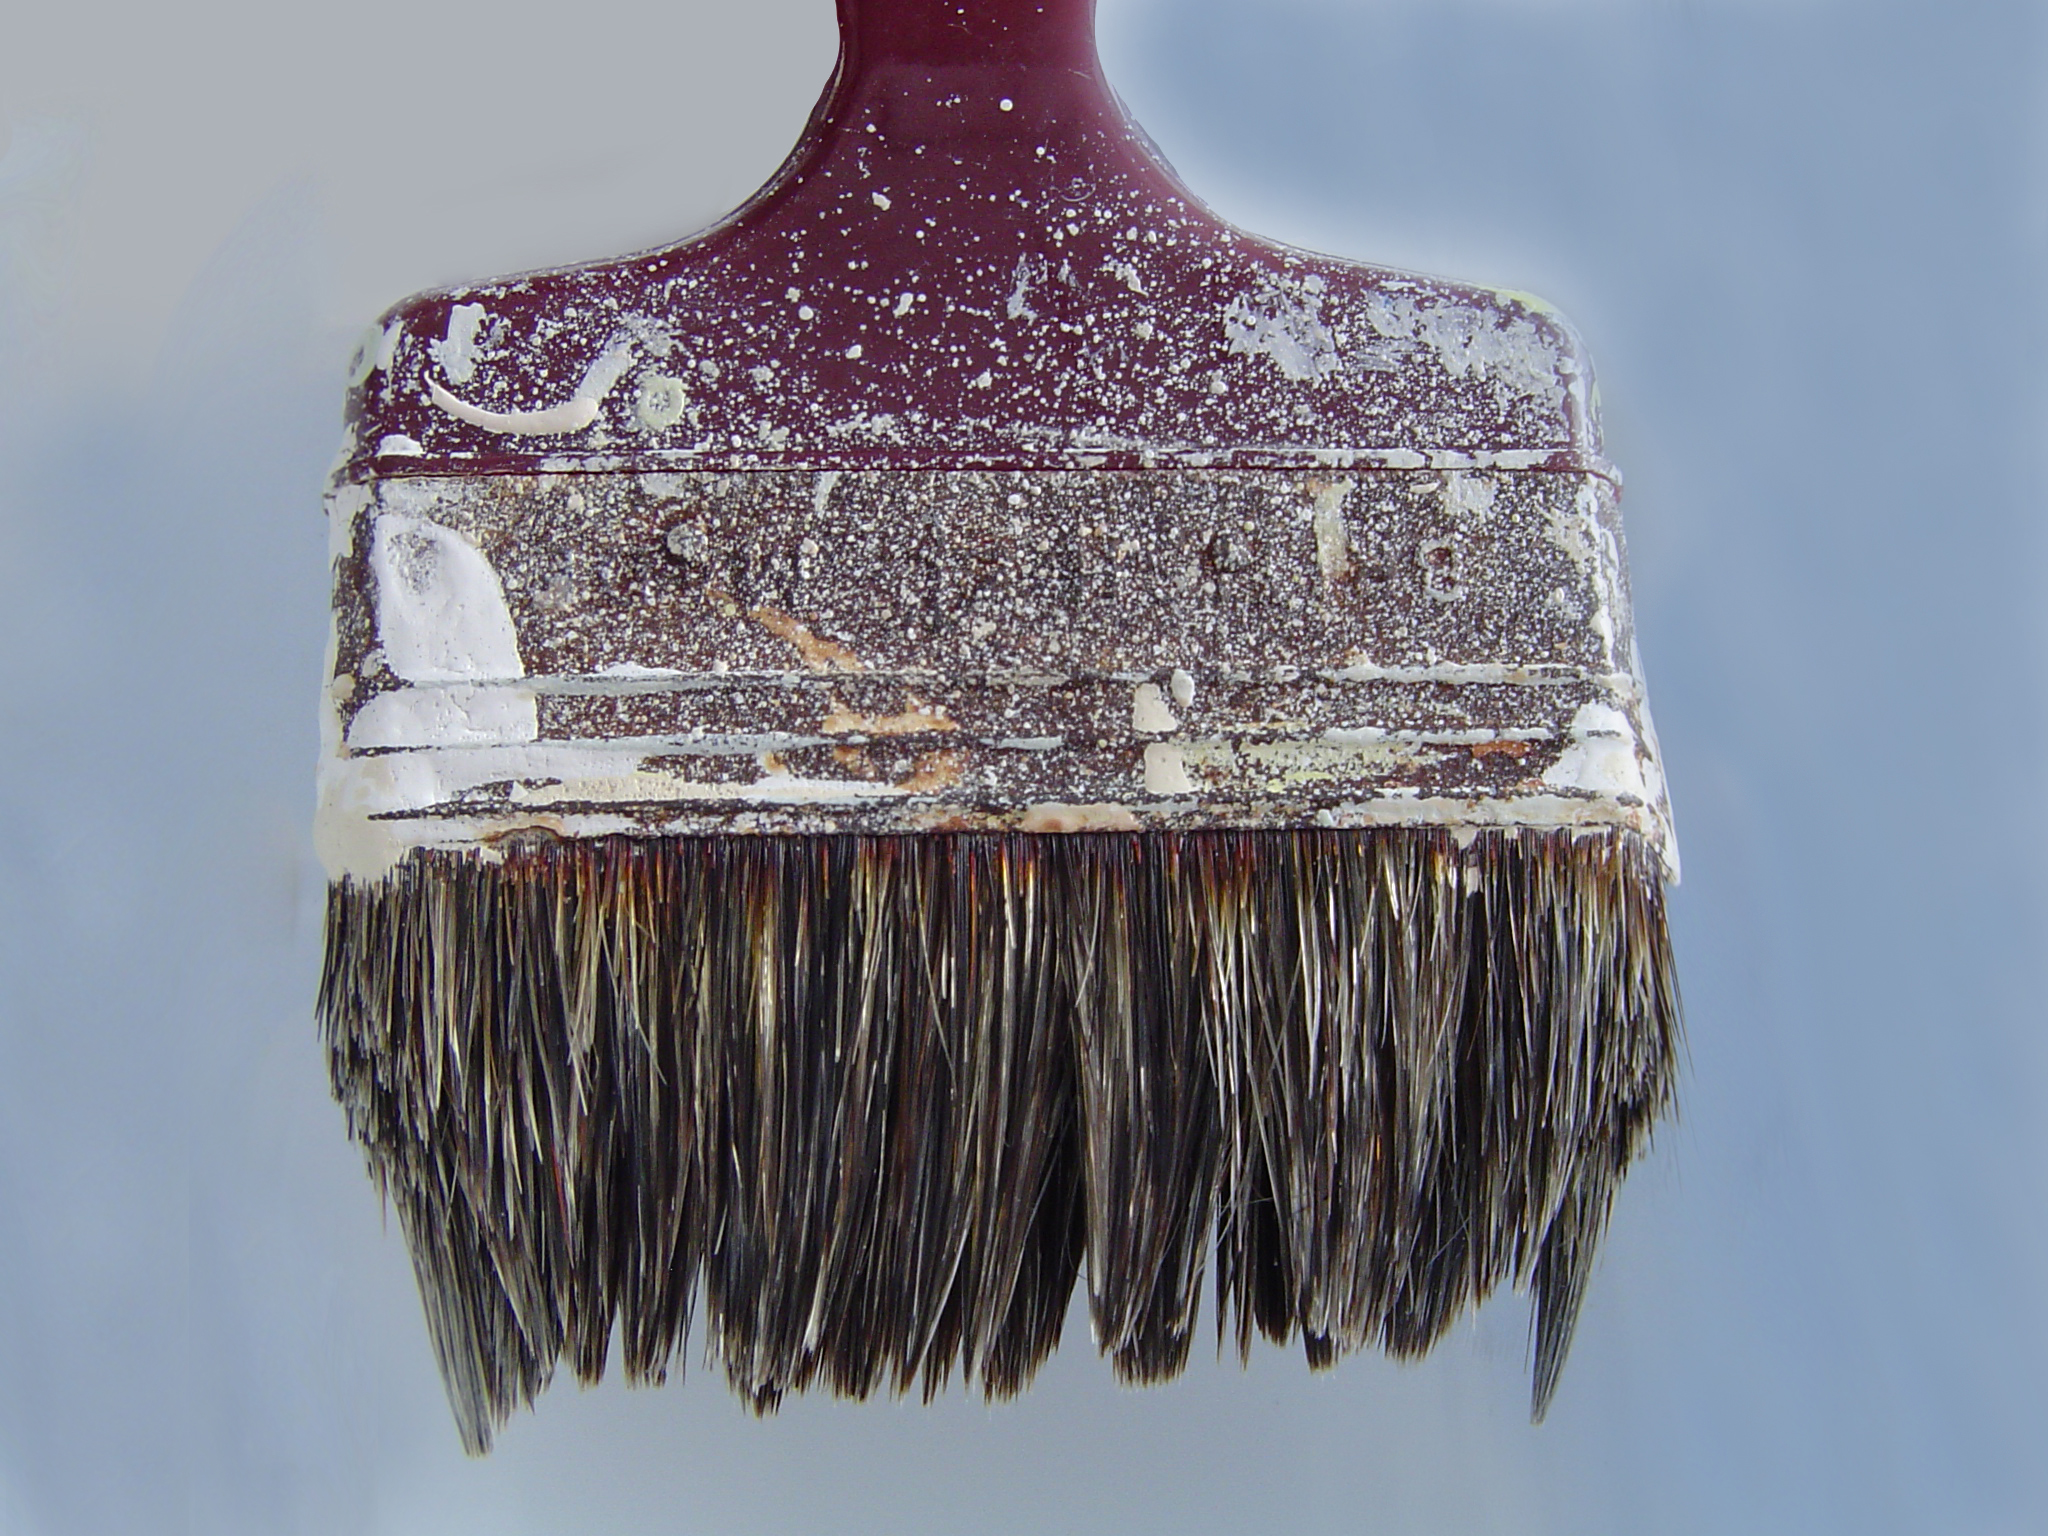 Get affordable paint and steel wire brushes for your home and other DIYs and save up to 35% today!